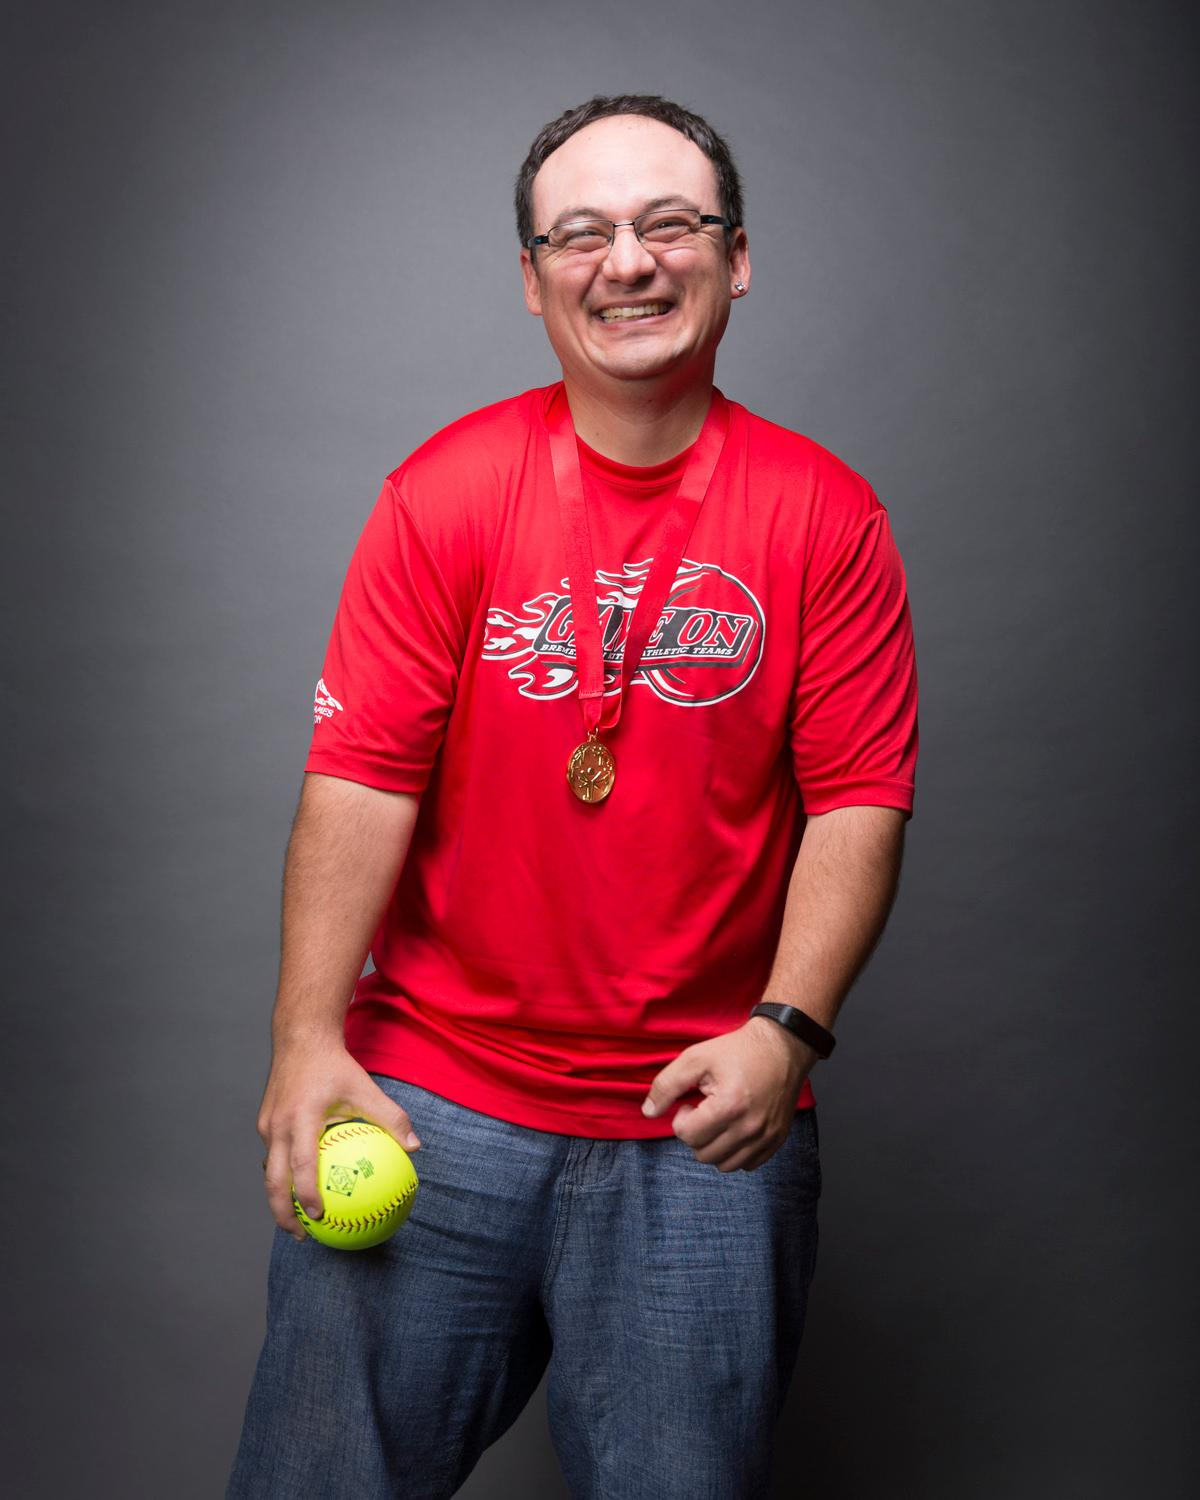 Introducing Jonathon Morales! Jonathon, aka Ricco, will be competing in softball. The Special Olympics USA will take place in Seattle from July 1-6, with a grand opening ceremony and Parade of Athletes and the lighting of the Special Olympics Flame of Hope. (Sy Bean / Seattle Refined)